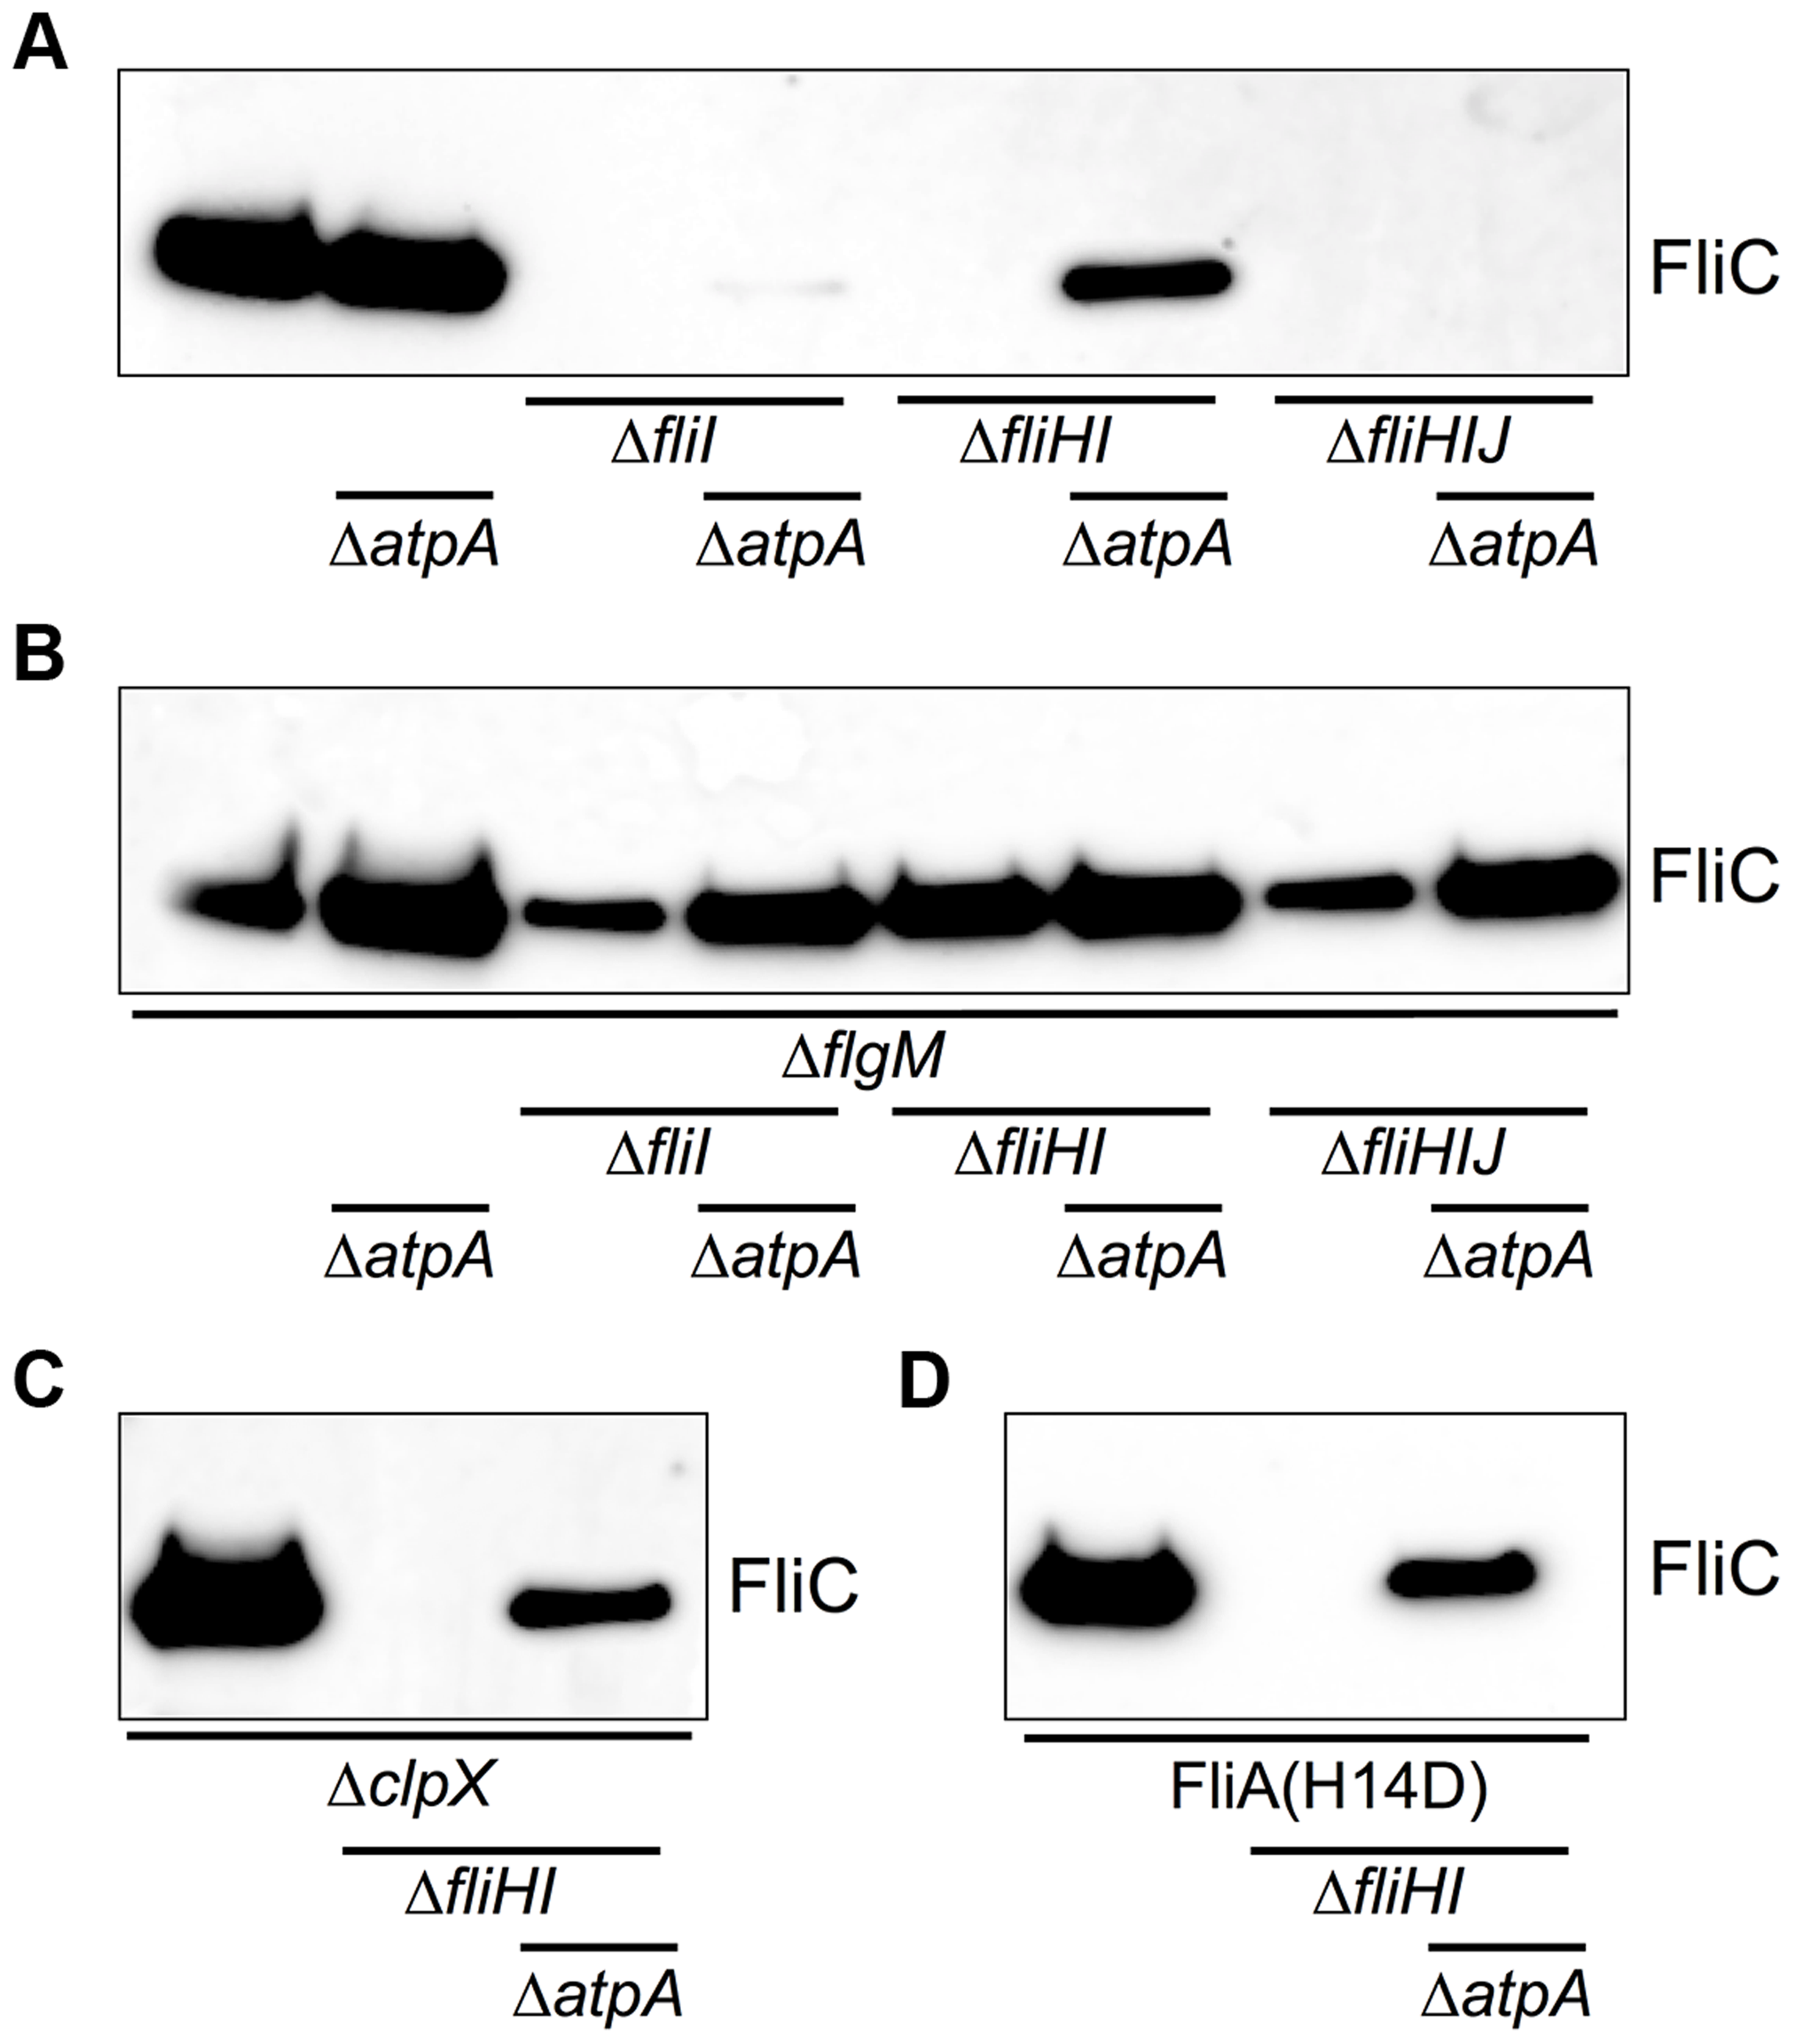 Flagellin protein secretion is restored in the absence of FliHIJ ATPase components by Δ<i>atpA</i>, <i>ΔflgM</i>, <i>ΔclpX</i>, and <i>fliA<sup>H14D</sup></i> mutations.